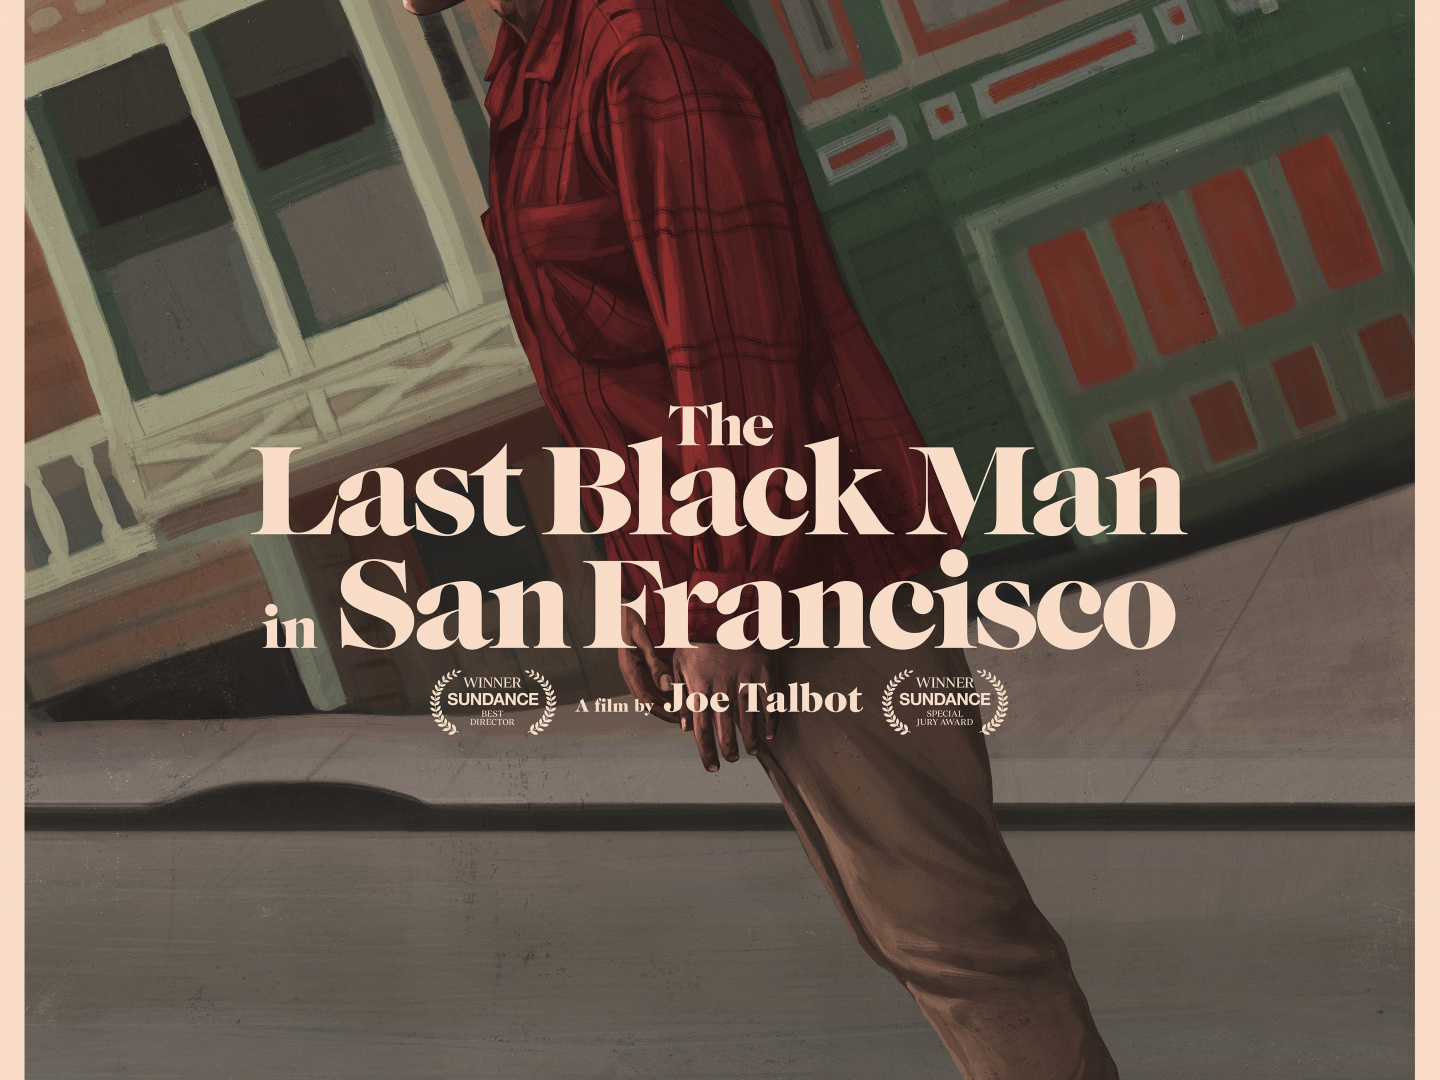 The Last Black Man in San Francisco 1 Thumbnail